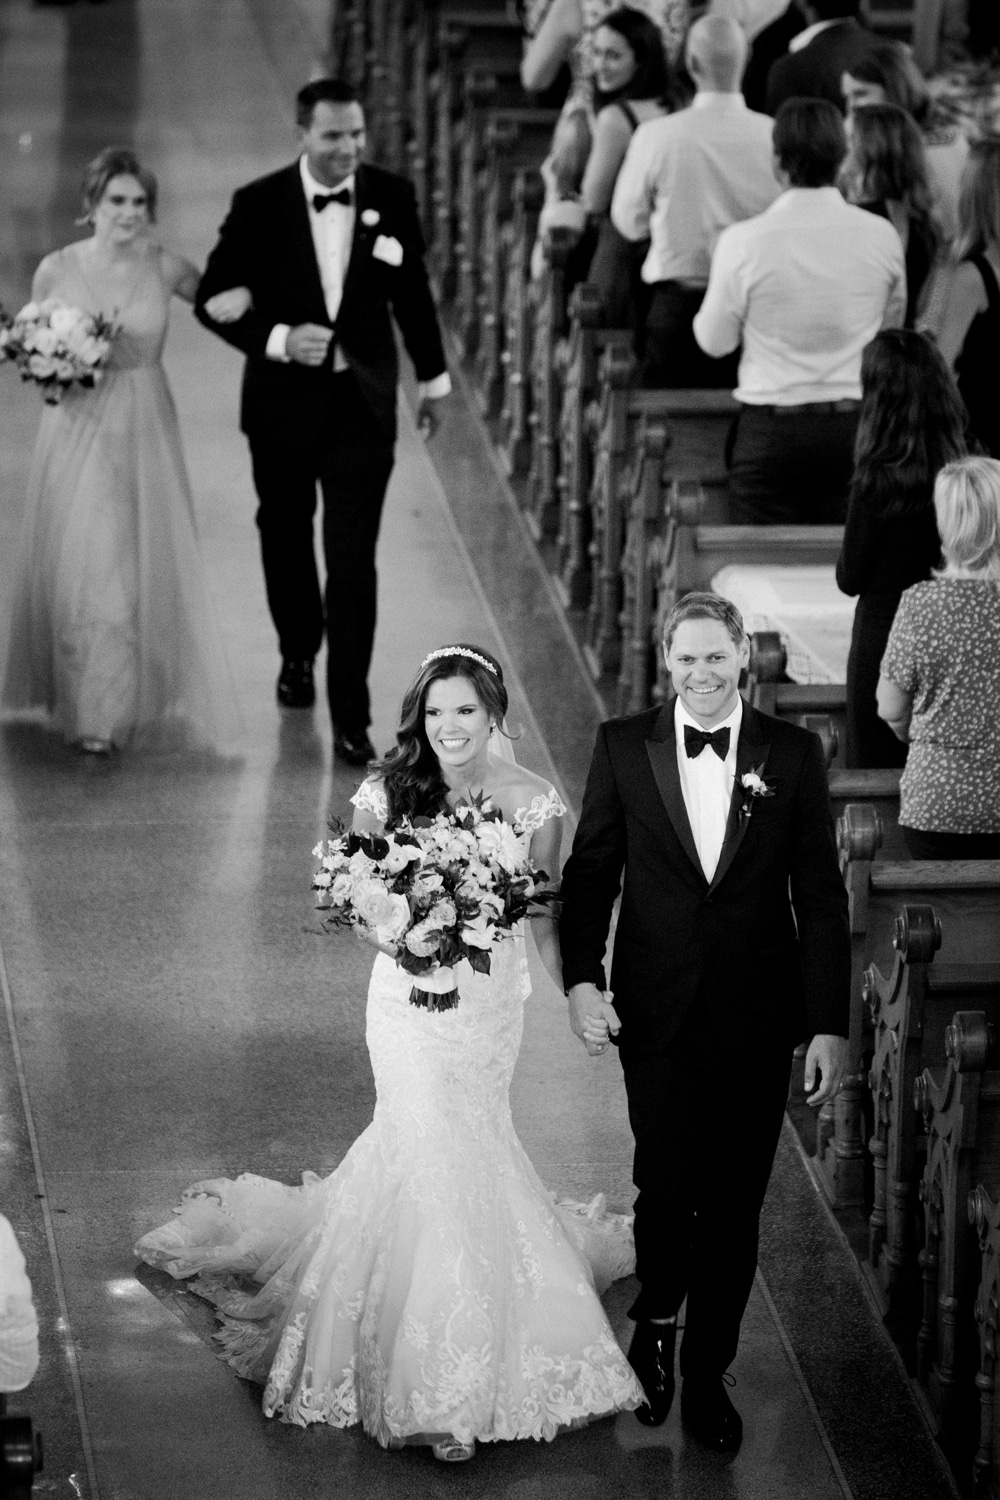 kristin-la-voie-photography-henry-ford-museum-detroit-wedding-photographer-22